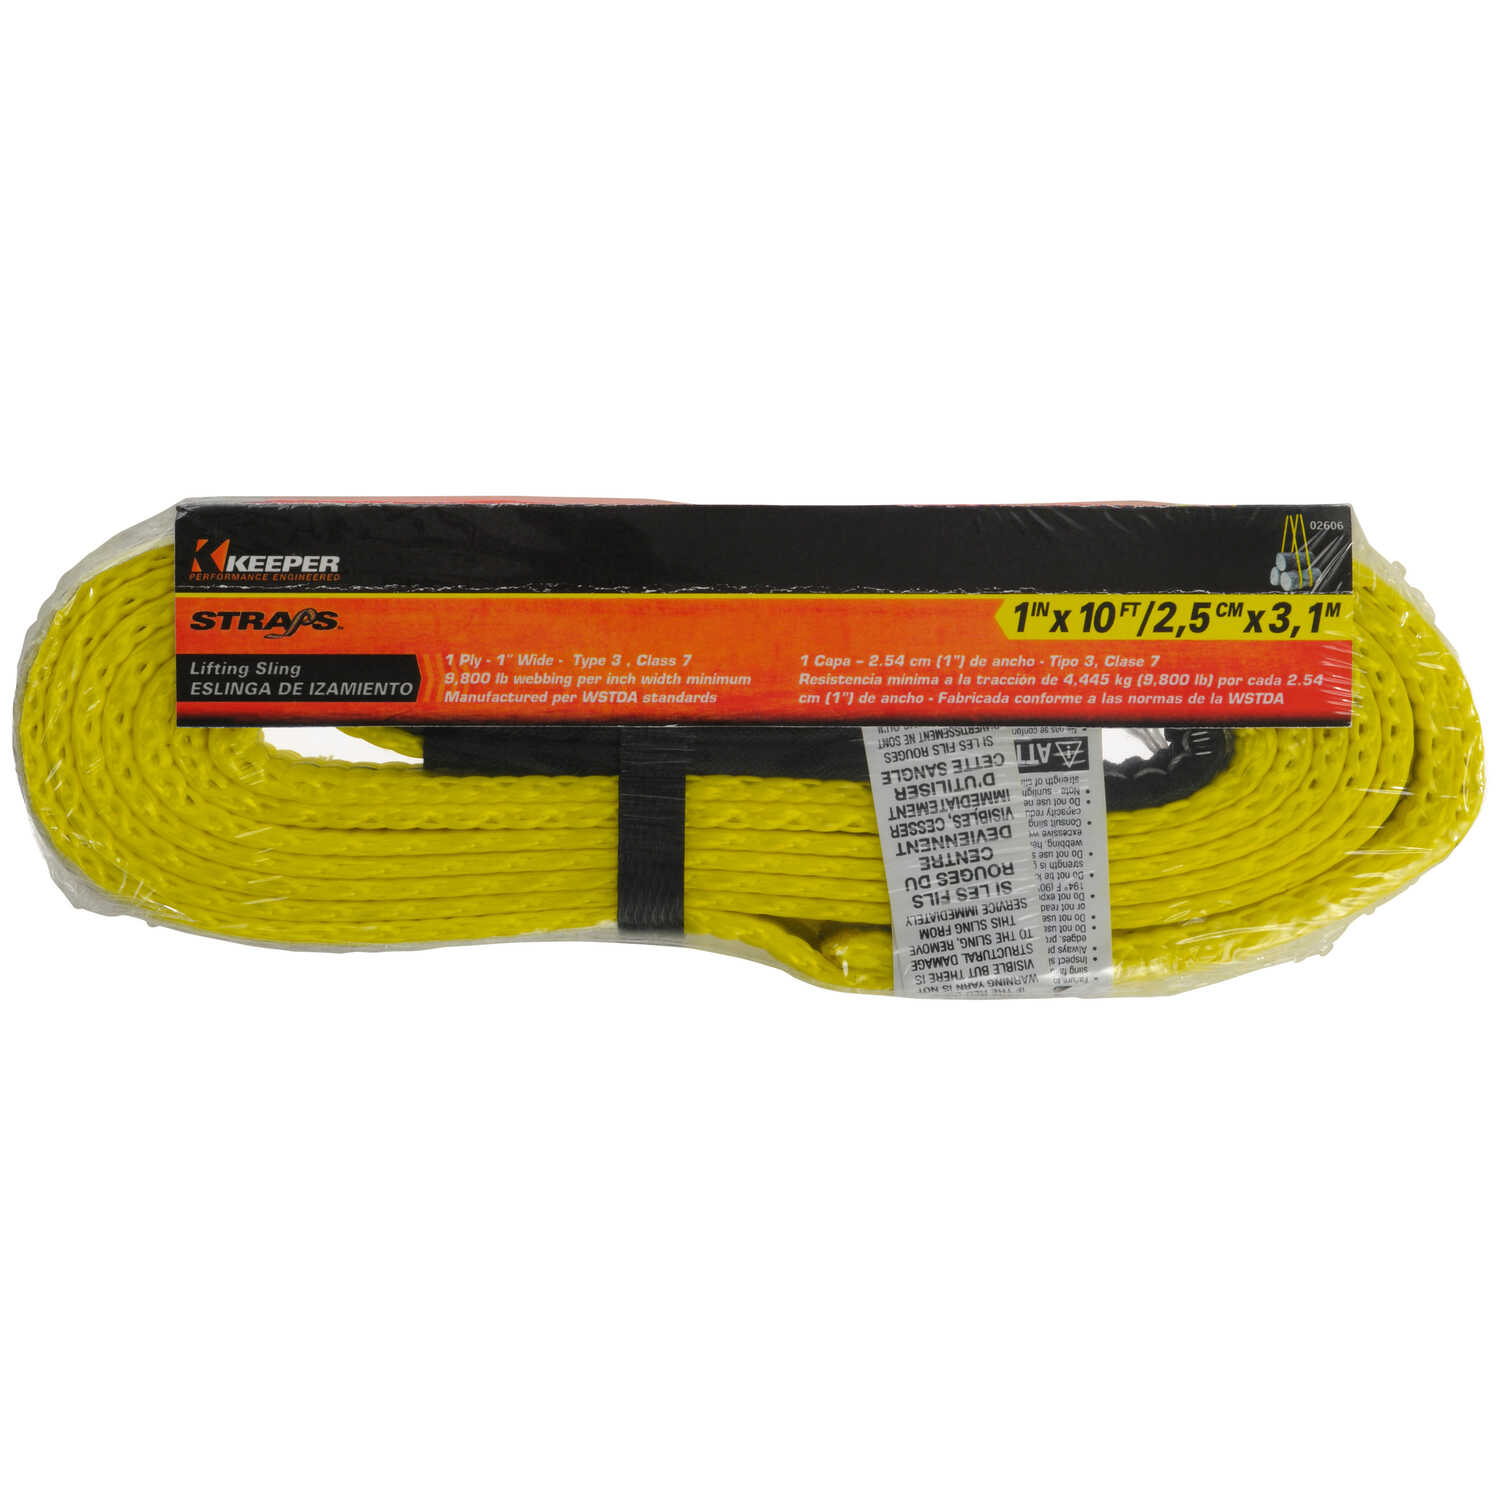 Keeper  10 ft. L Yellow  Lifting Sling  3200 lb. 1 pk